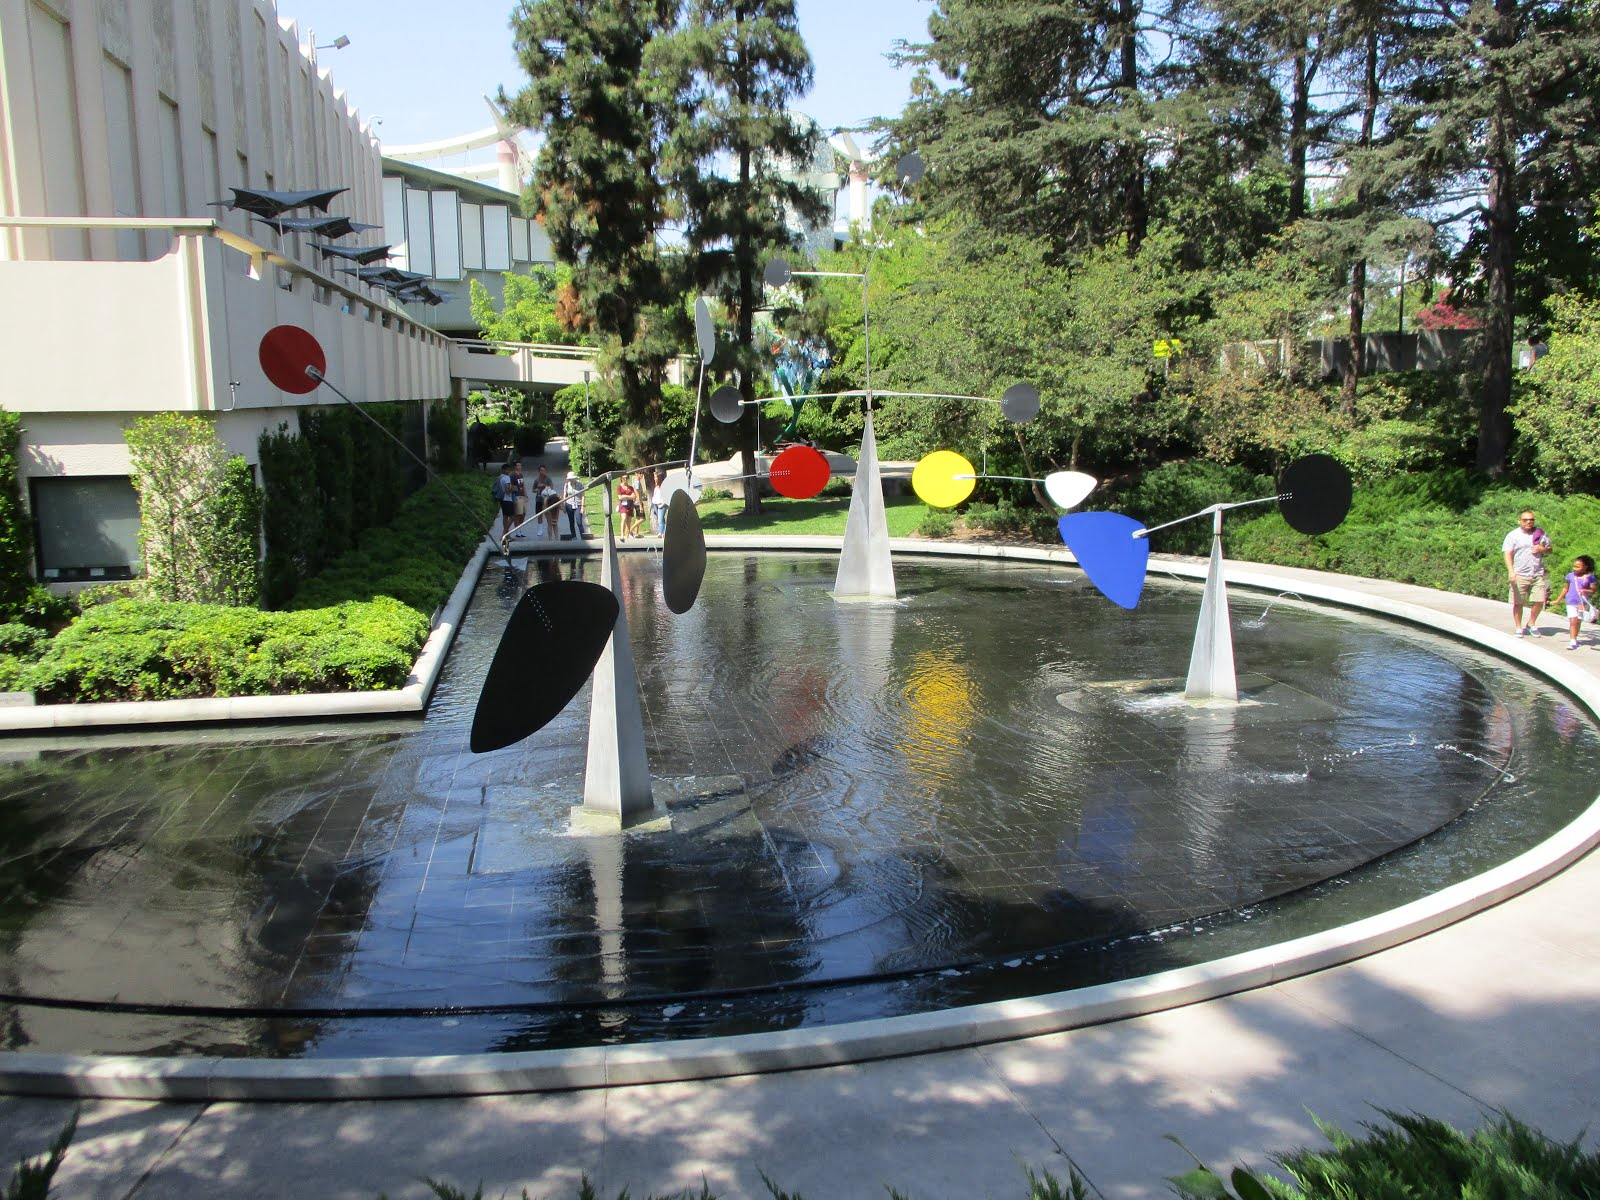 LOS-ANGELES COUNTY MUSEUM OF ART